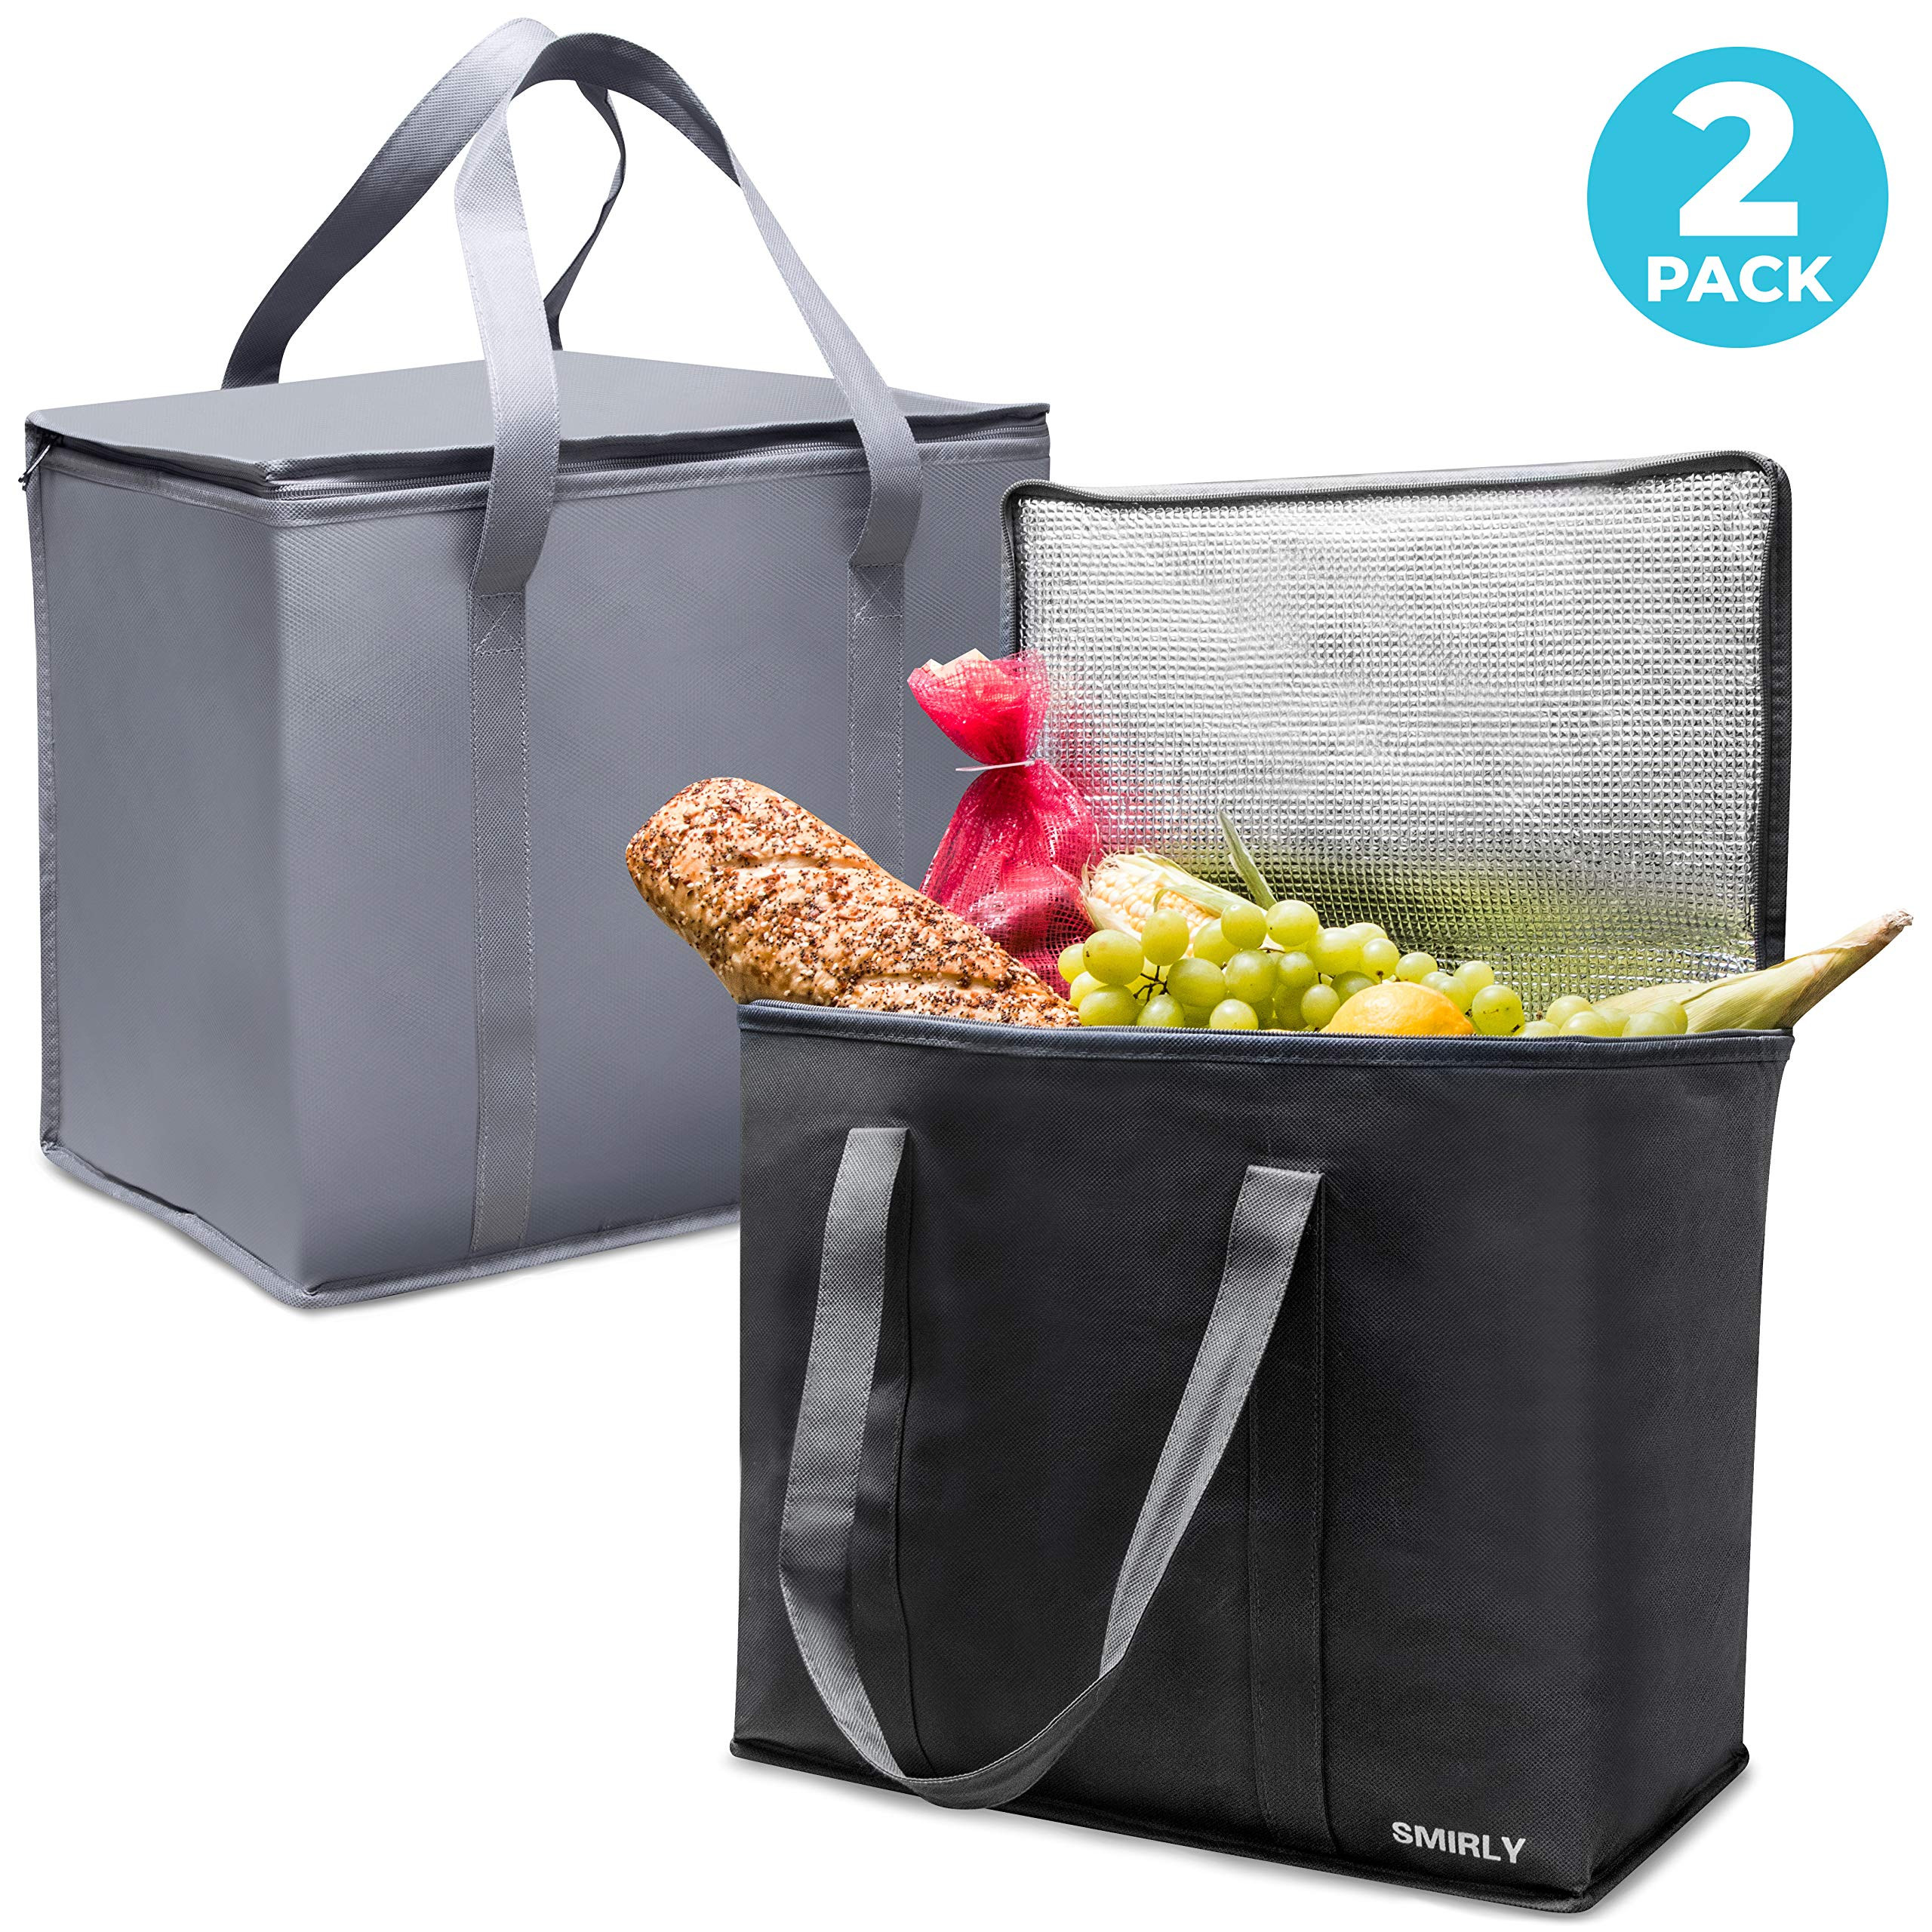 Smirly Insulated Reusable Grocery Bags: 2 Pack of Heavy Duty Shopping Bags with Zippered Top and Sturdy Handles – Large Thermal Insulated Tote Bag for Hot or Cold Groceries